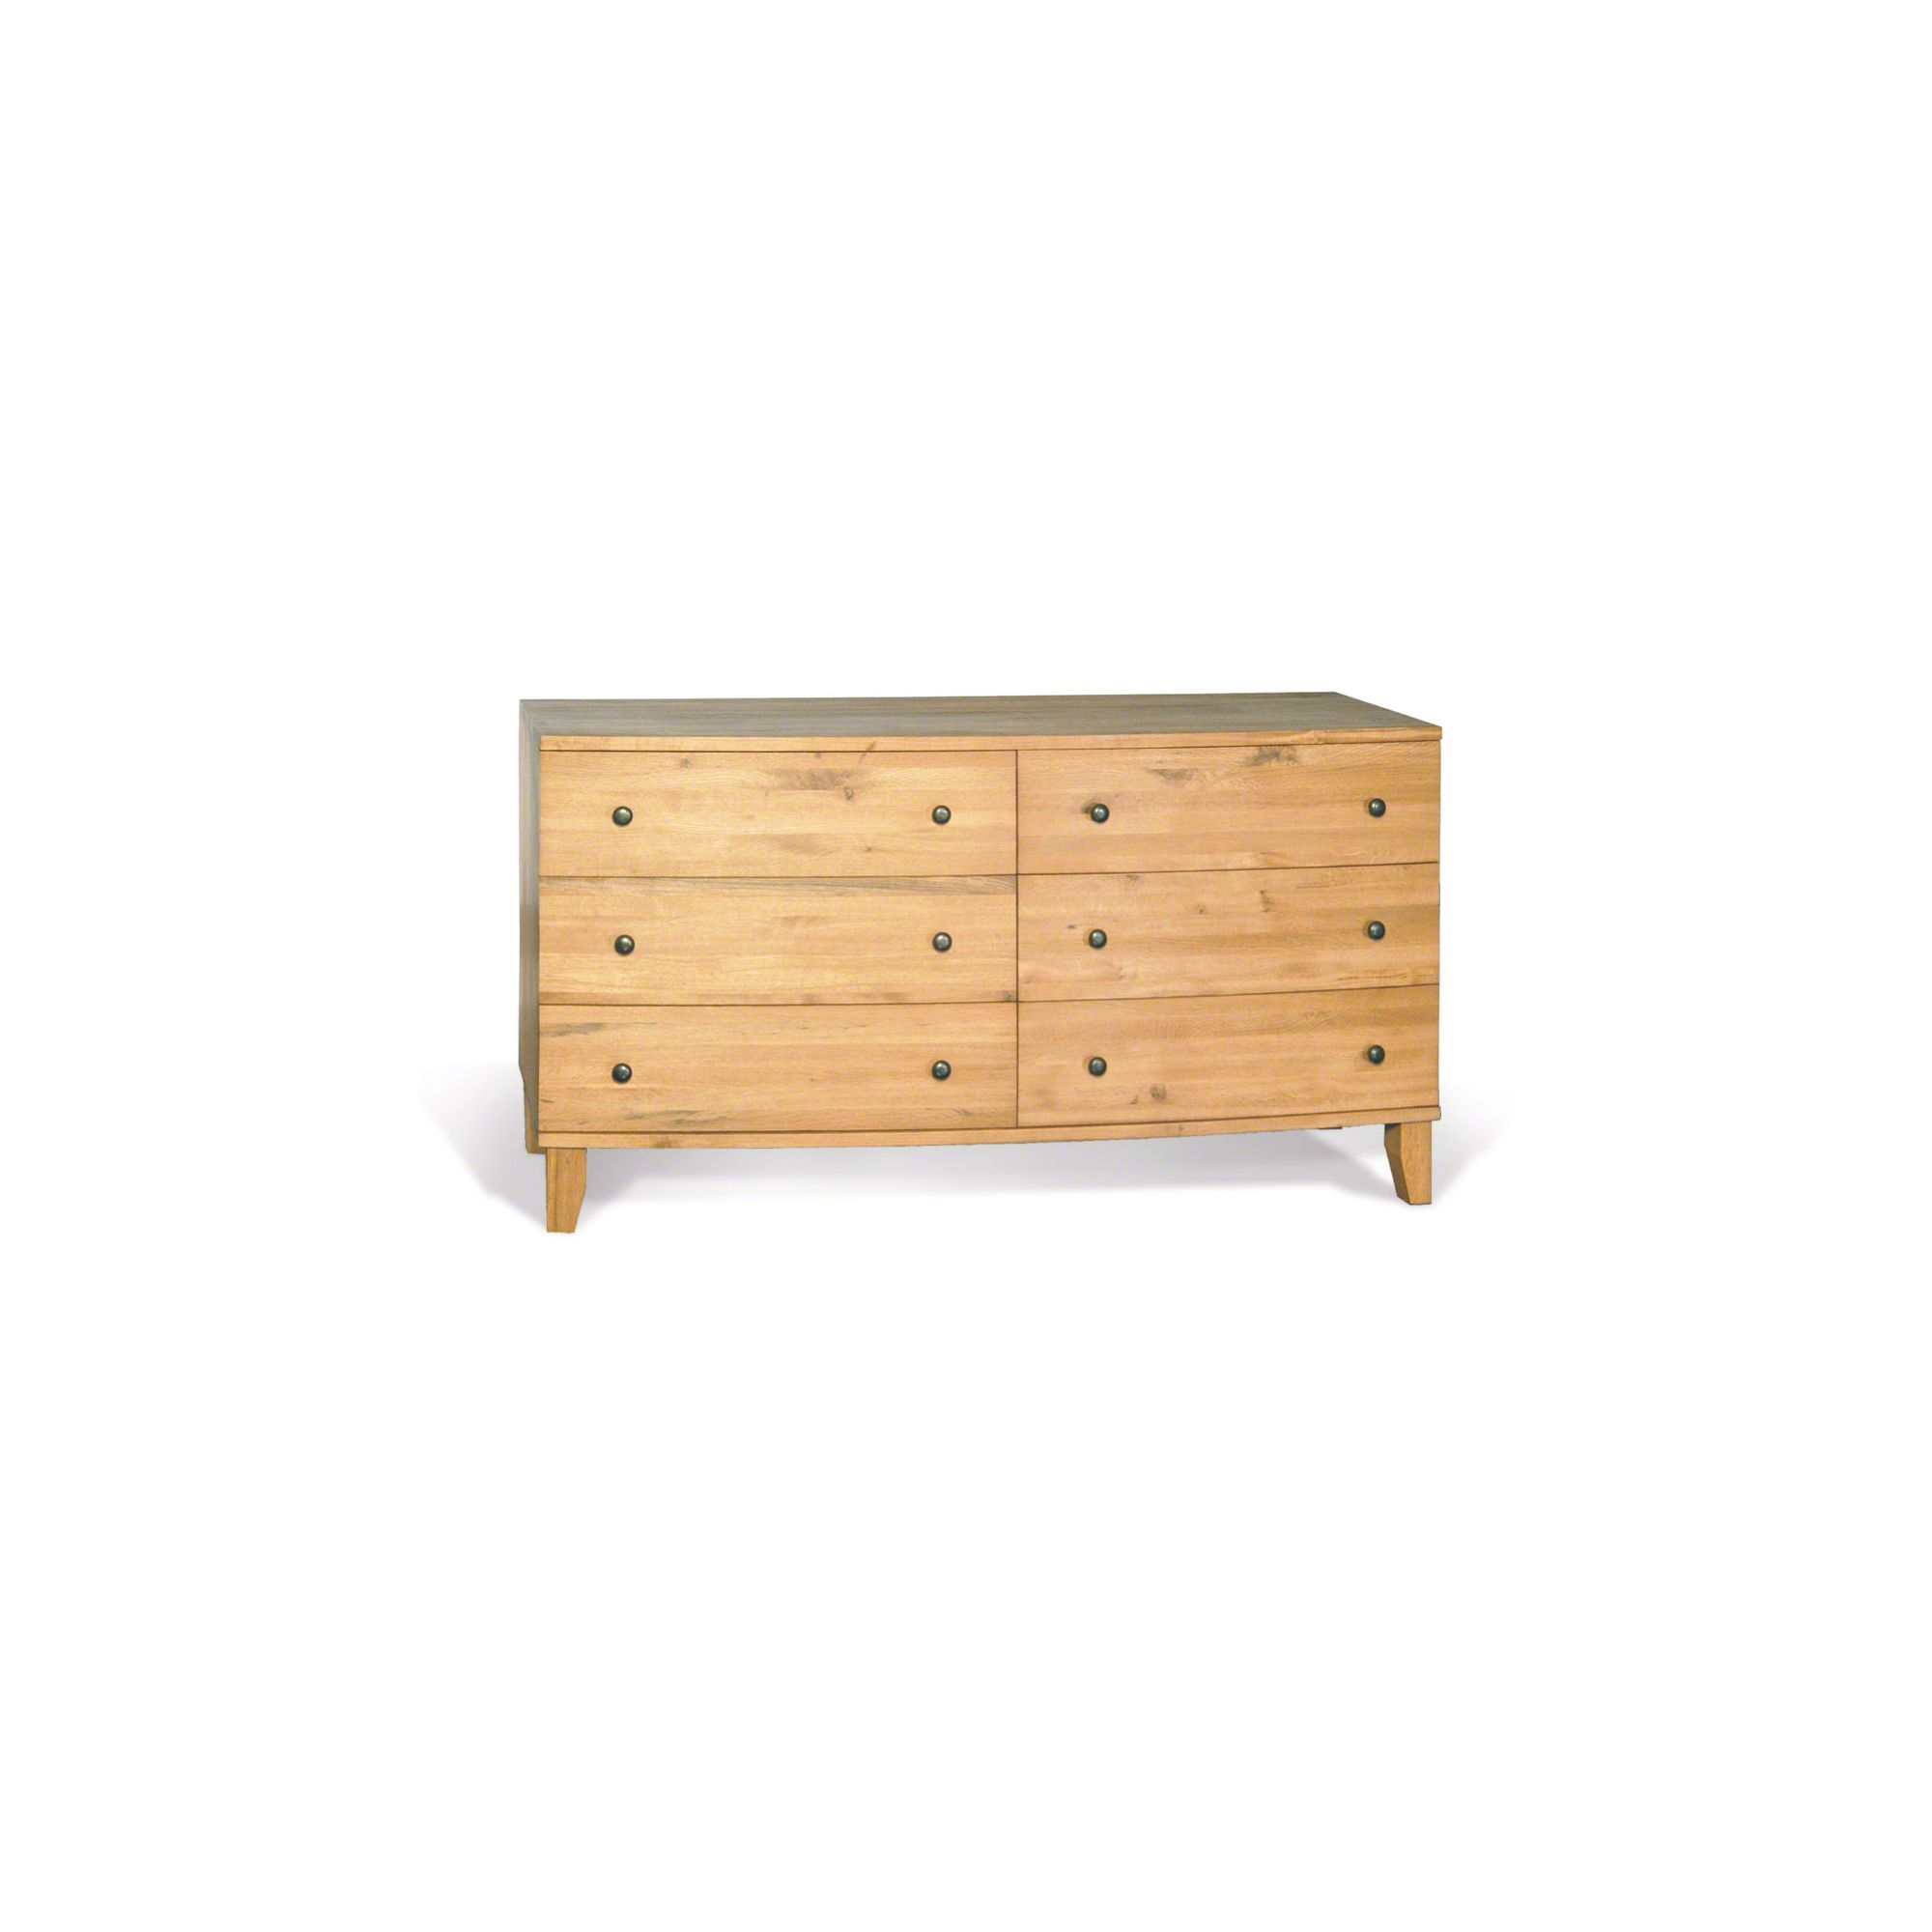 Oceans Apart Cordoba Dark Oak Wide 6 Drawer dresser - Oak at Tesco Direct